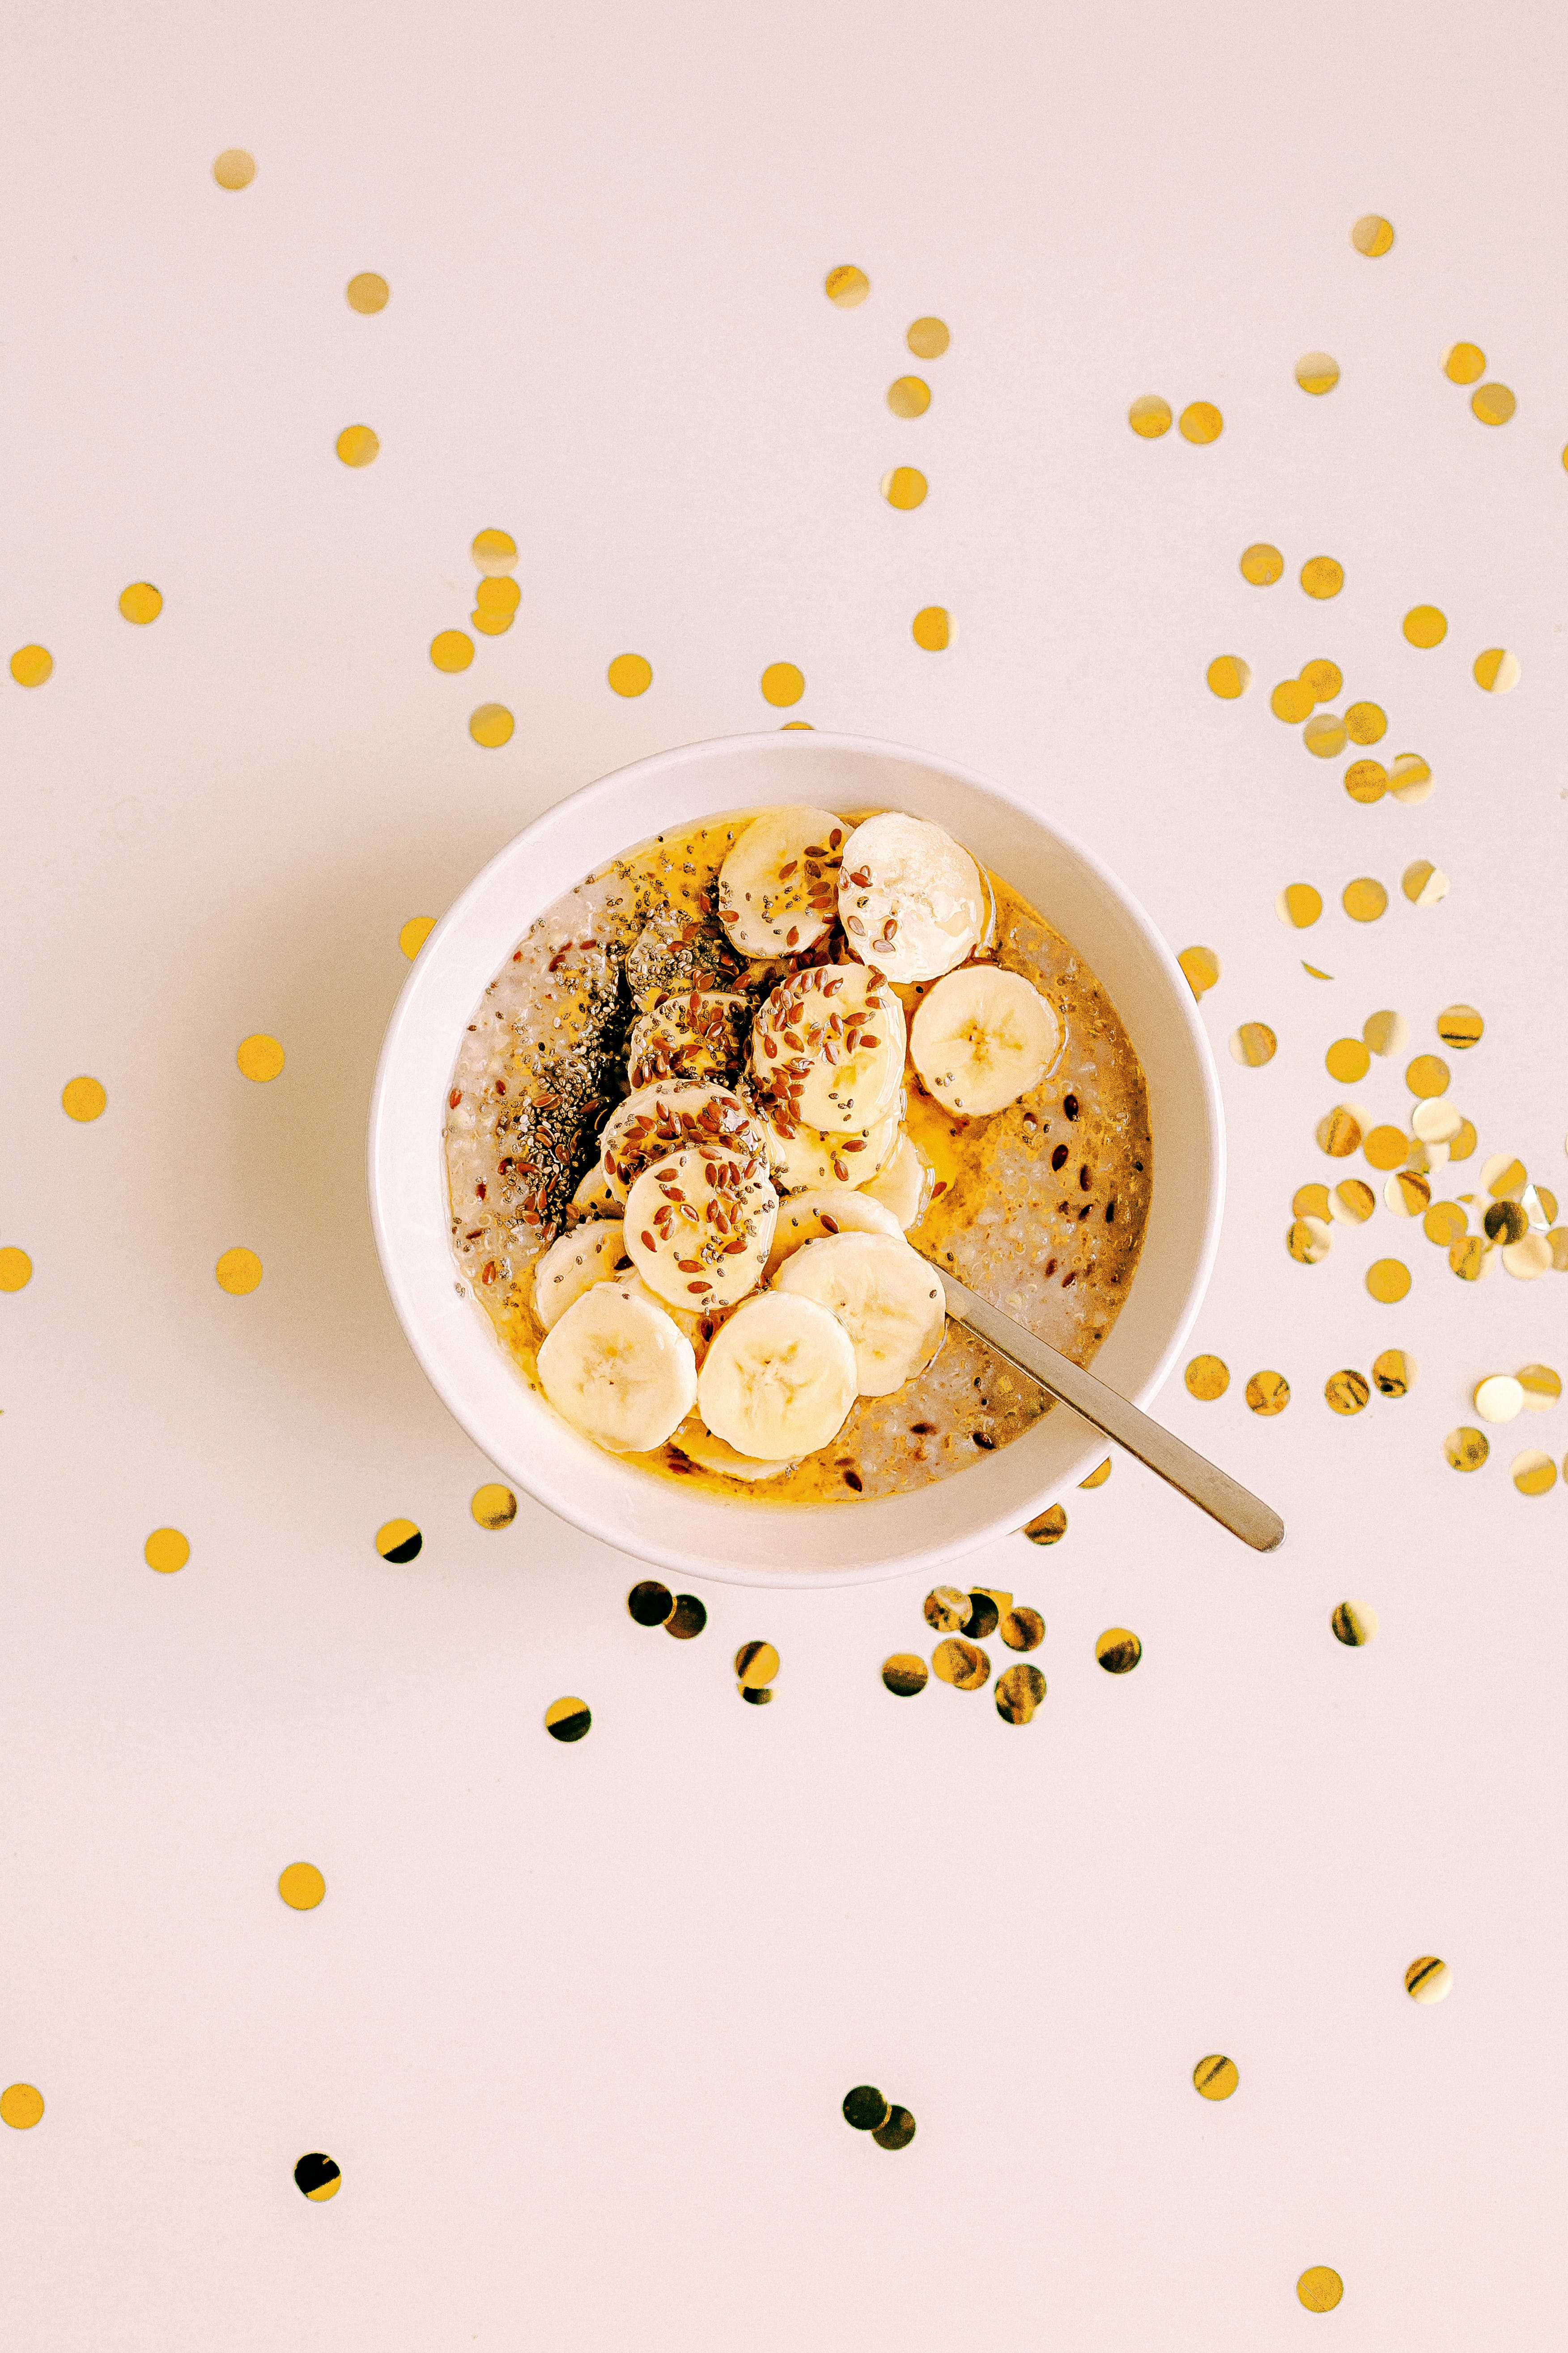 Bowl of Sliced Bananas With Rice Crispies